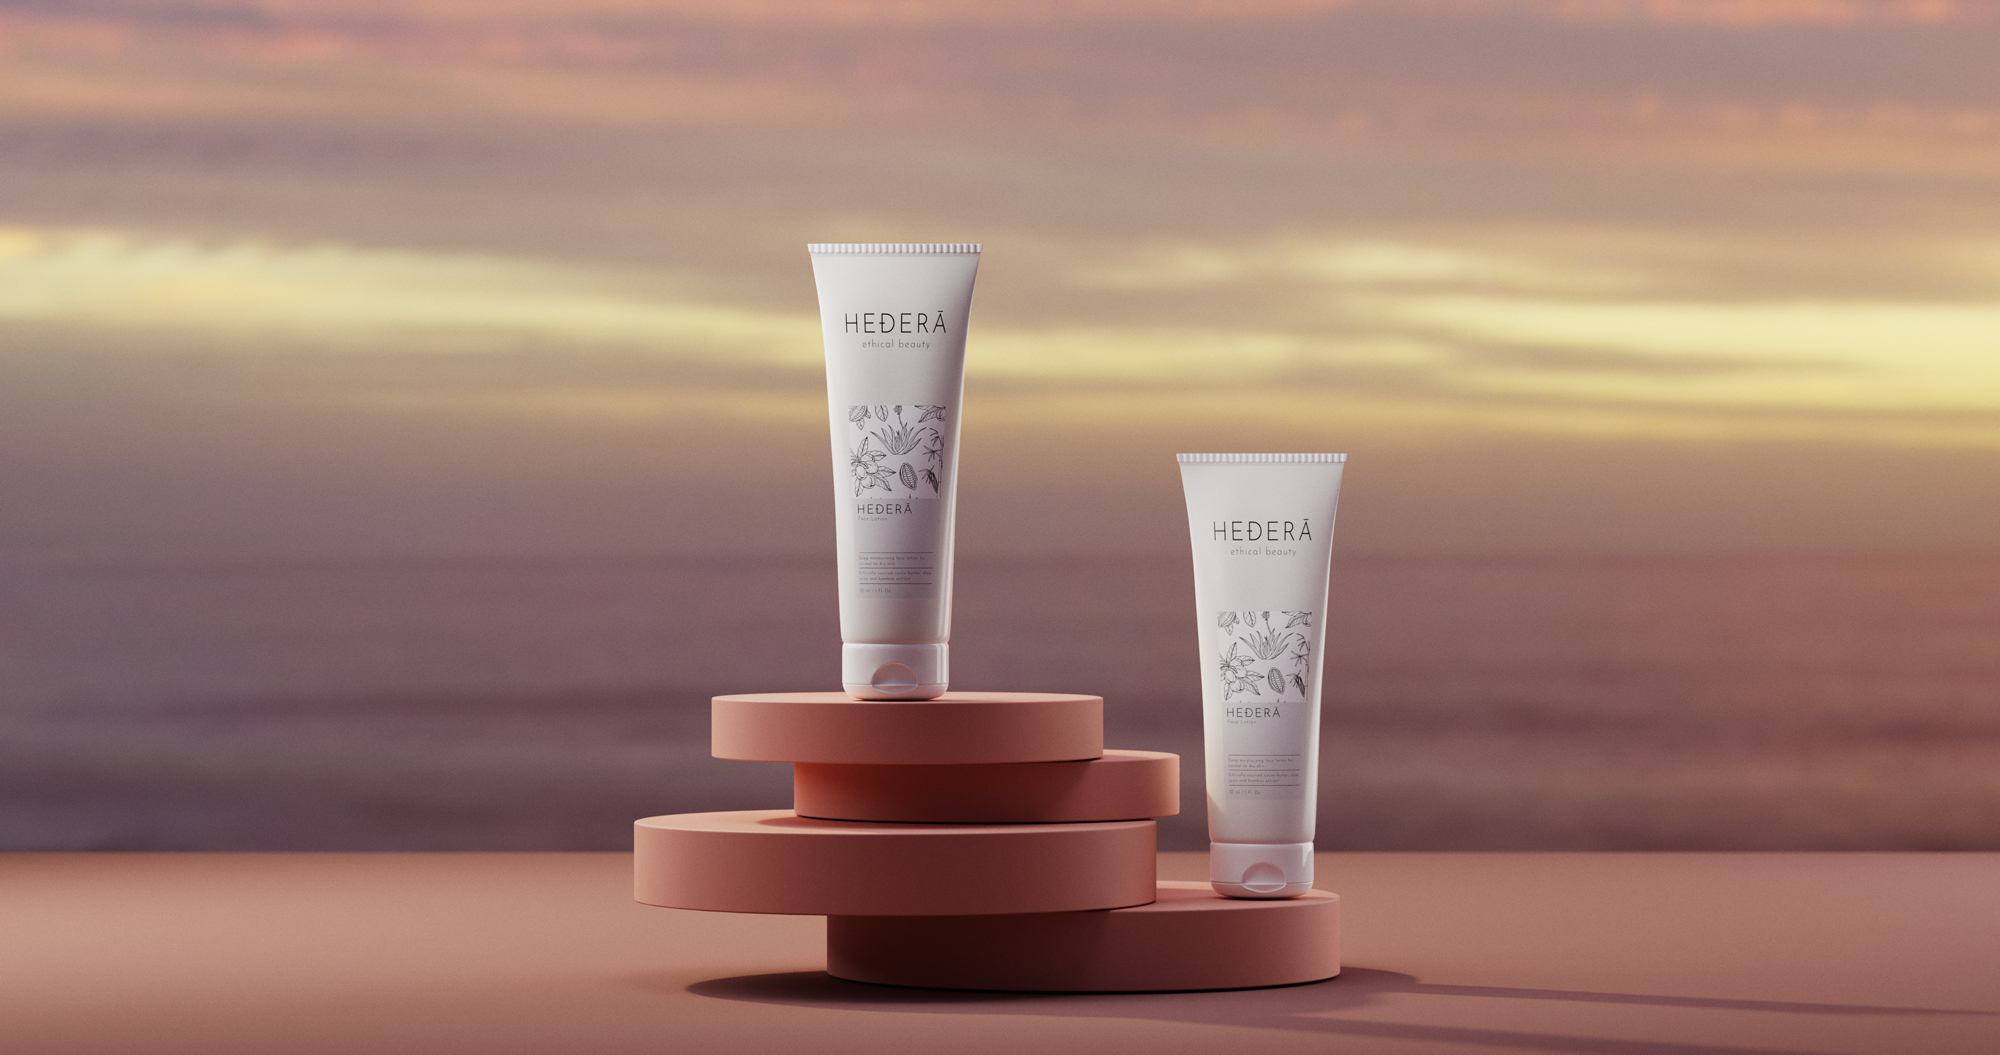 CGI Cosmetics Products Render of two cream tube products on a dish stand in front of a sunset sky in the background- by Wenbo Zhao Photography-Sydney